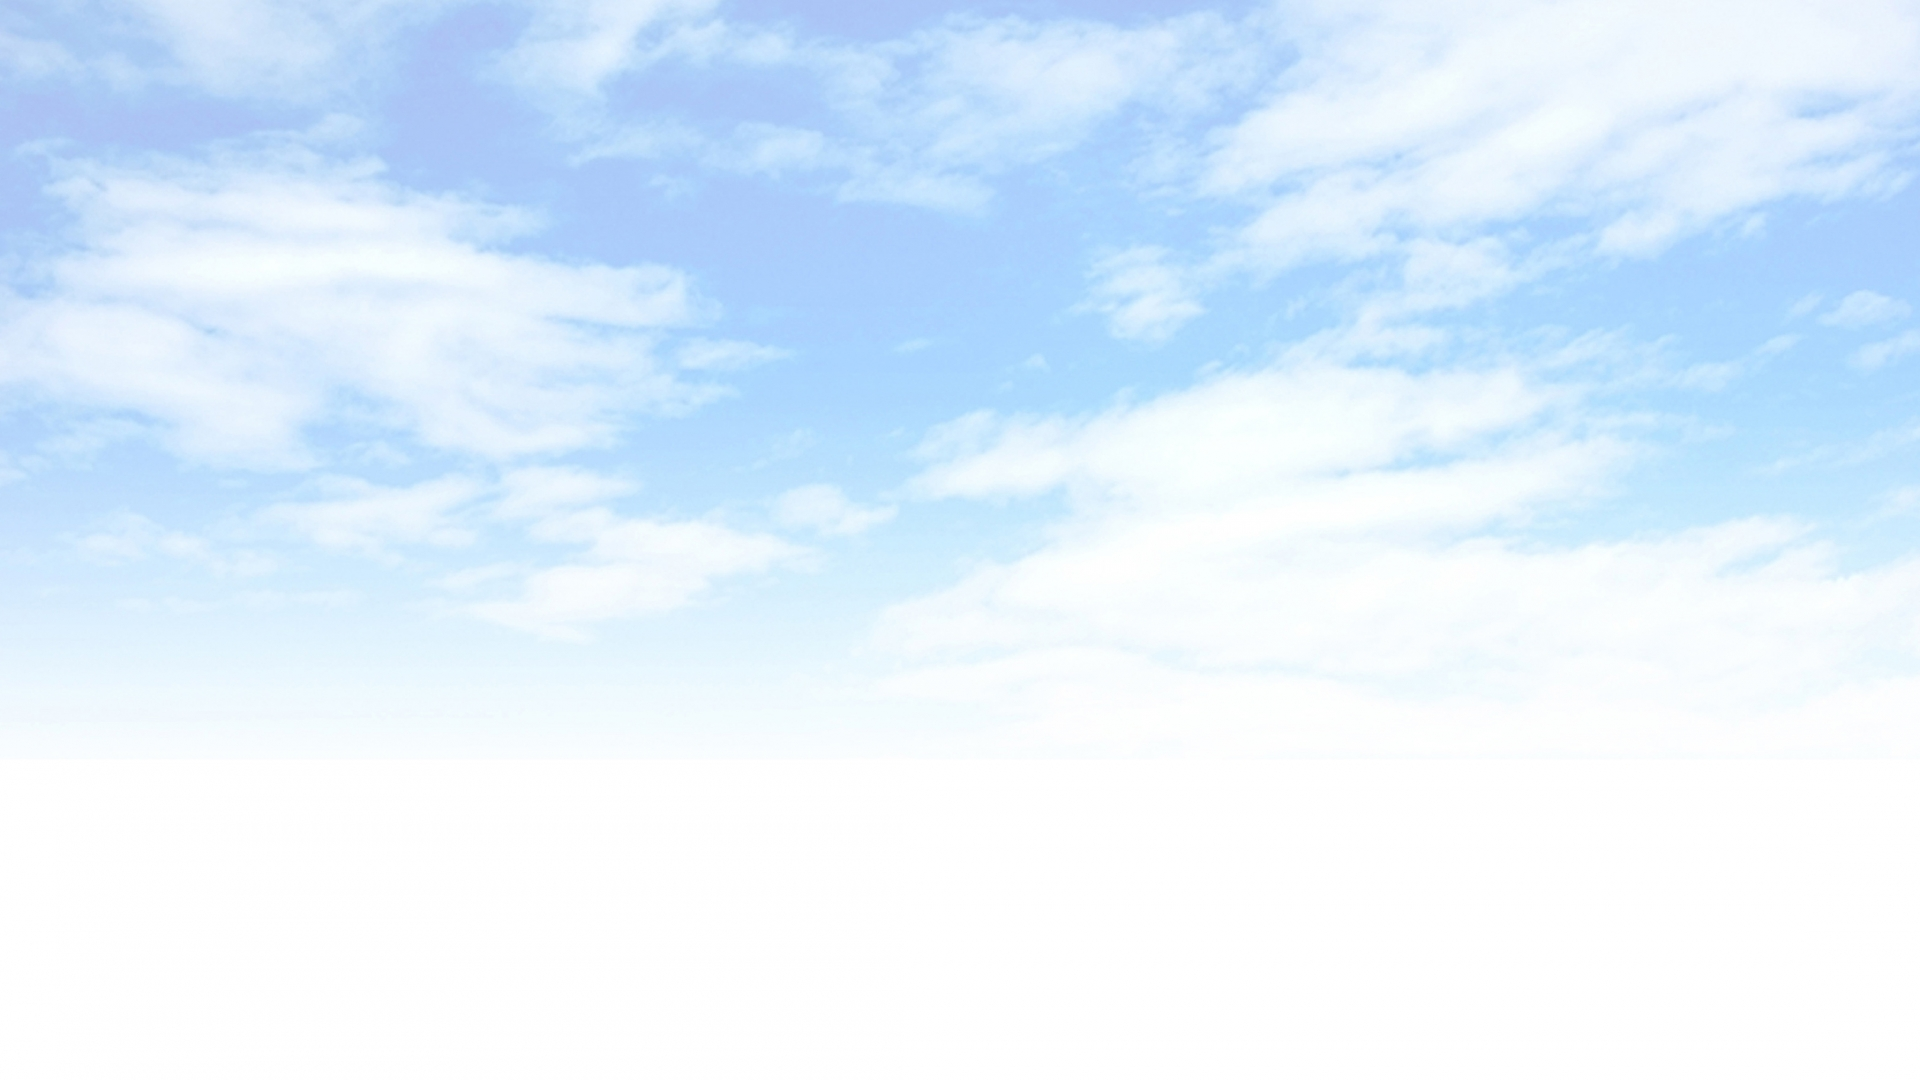 1578-cloud-background-resized3-vail-blue-sky-limo-1920×1080 ...